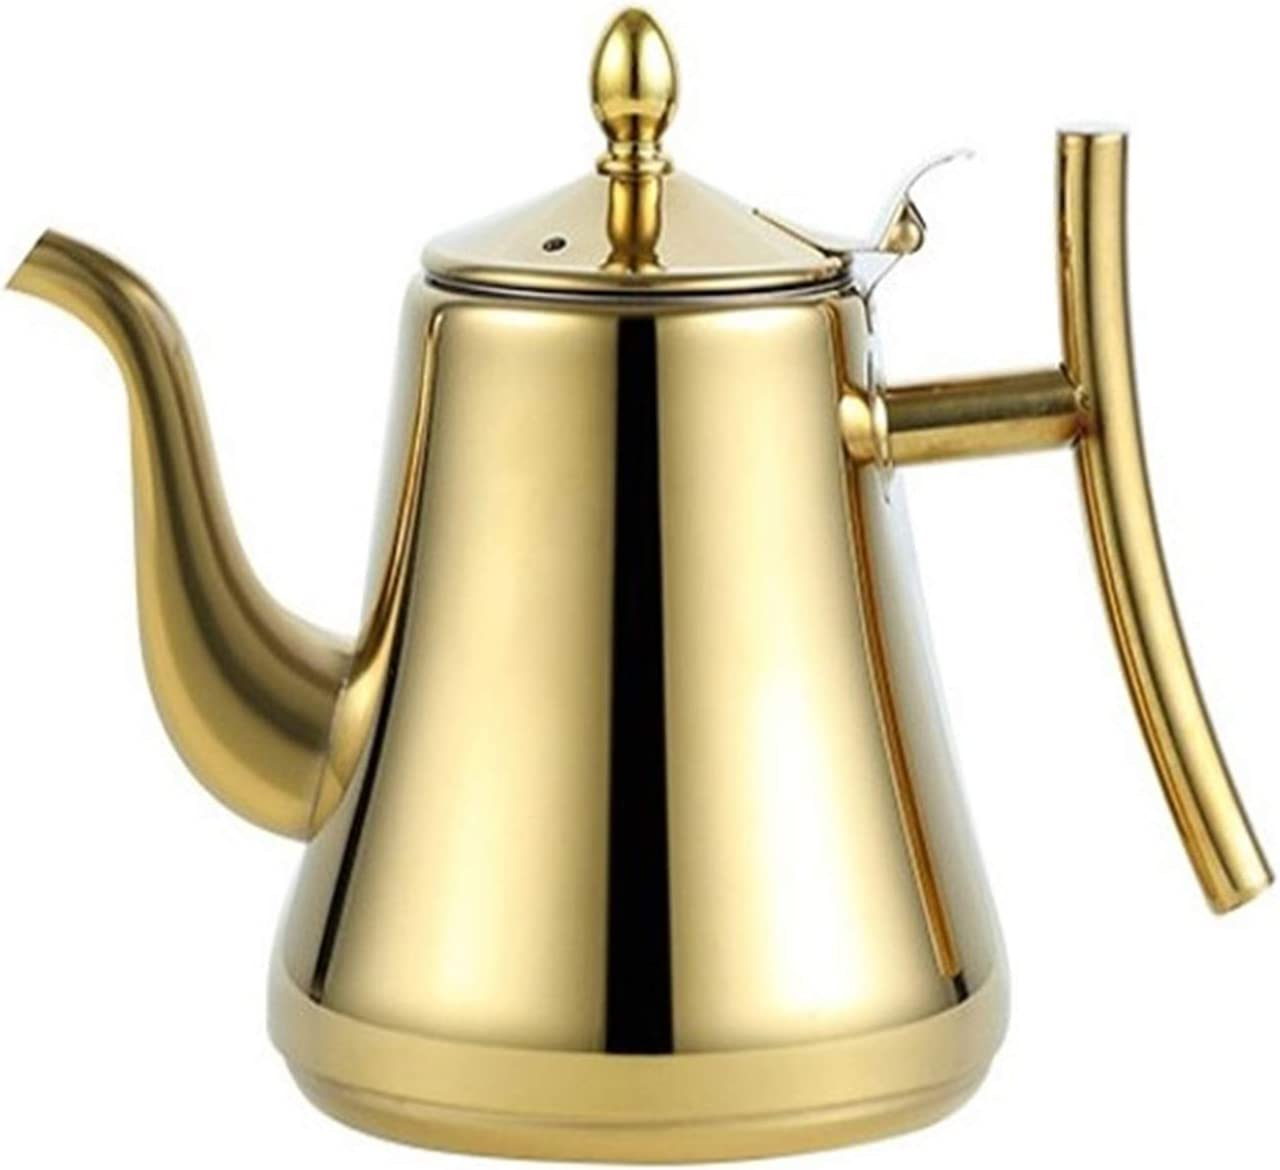 Stainless Steel gift Teapot Stovetop Tea Kettle With Free Shipping New Coffee Filt Pot